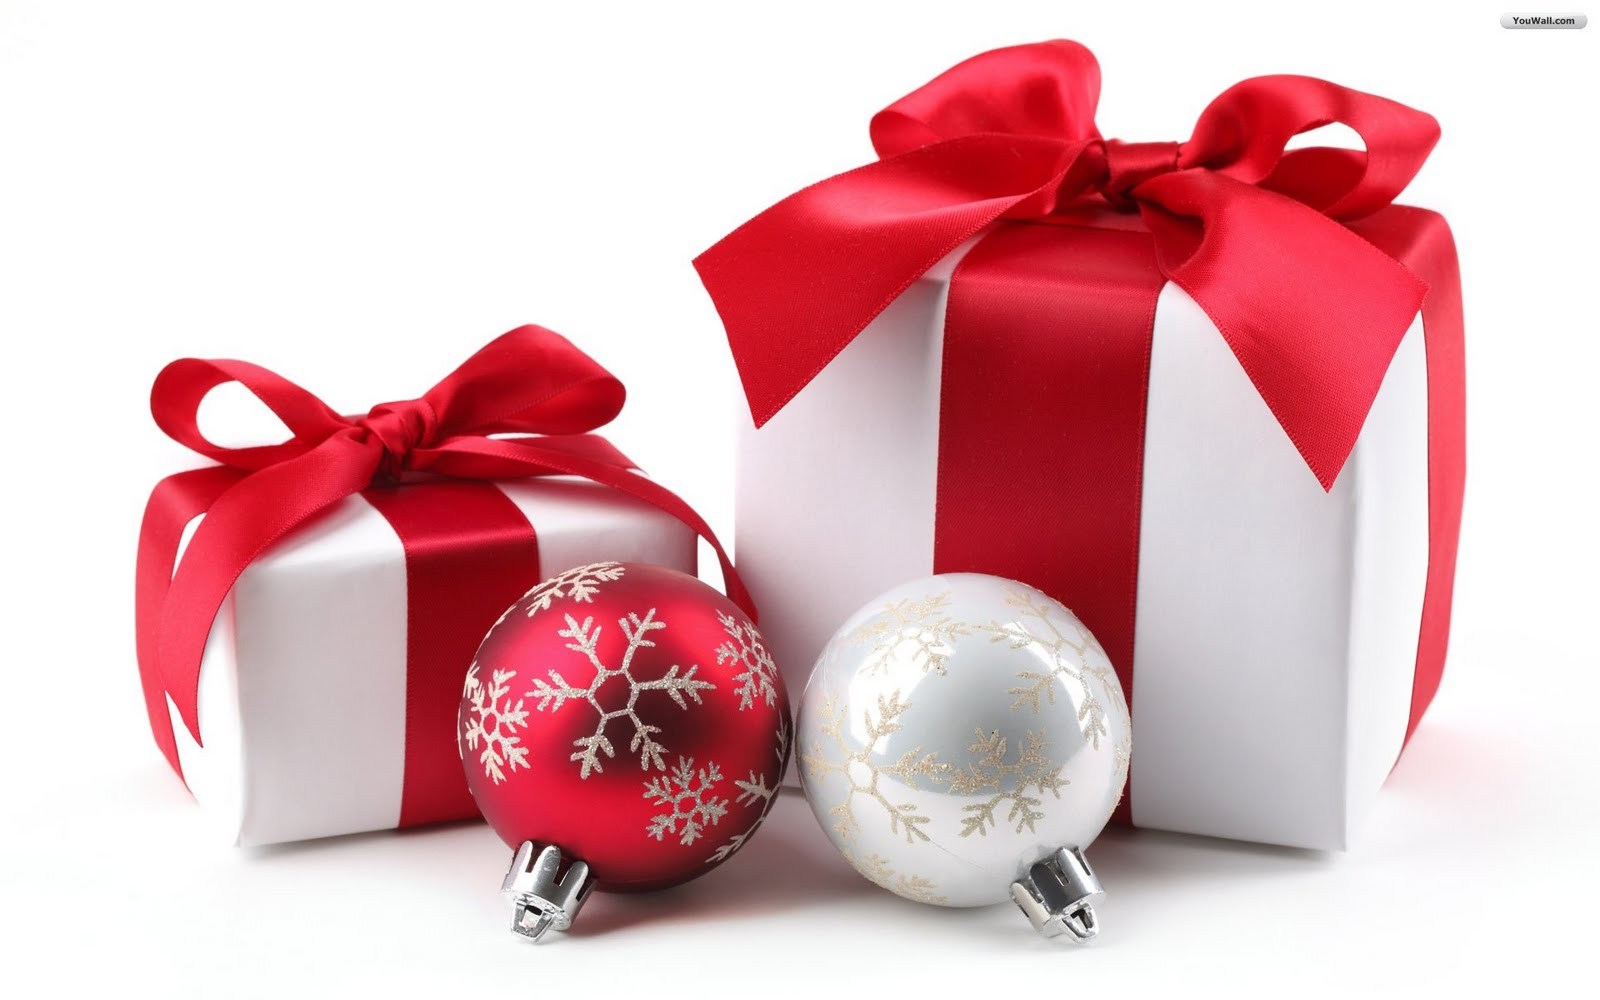 Wallpapers Background Christmas Gifts Wallpapers 1600x1000